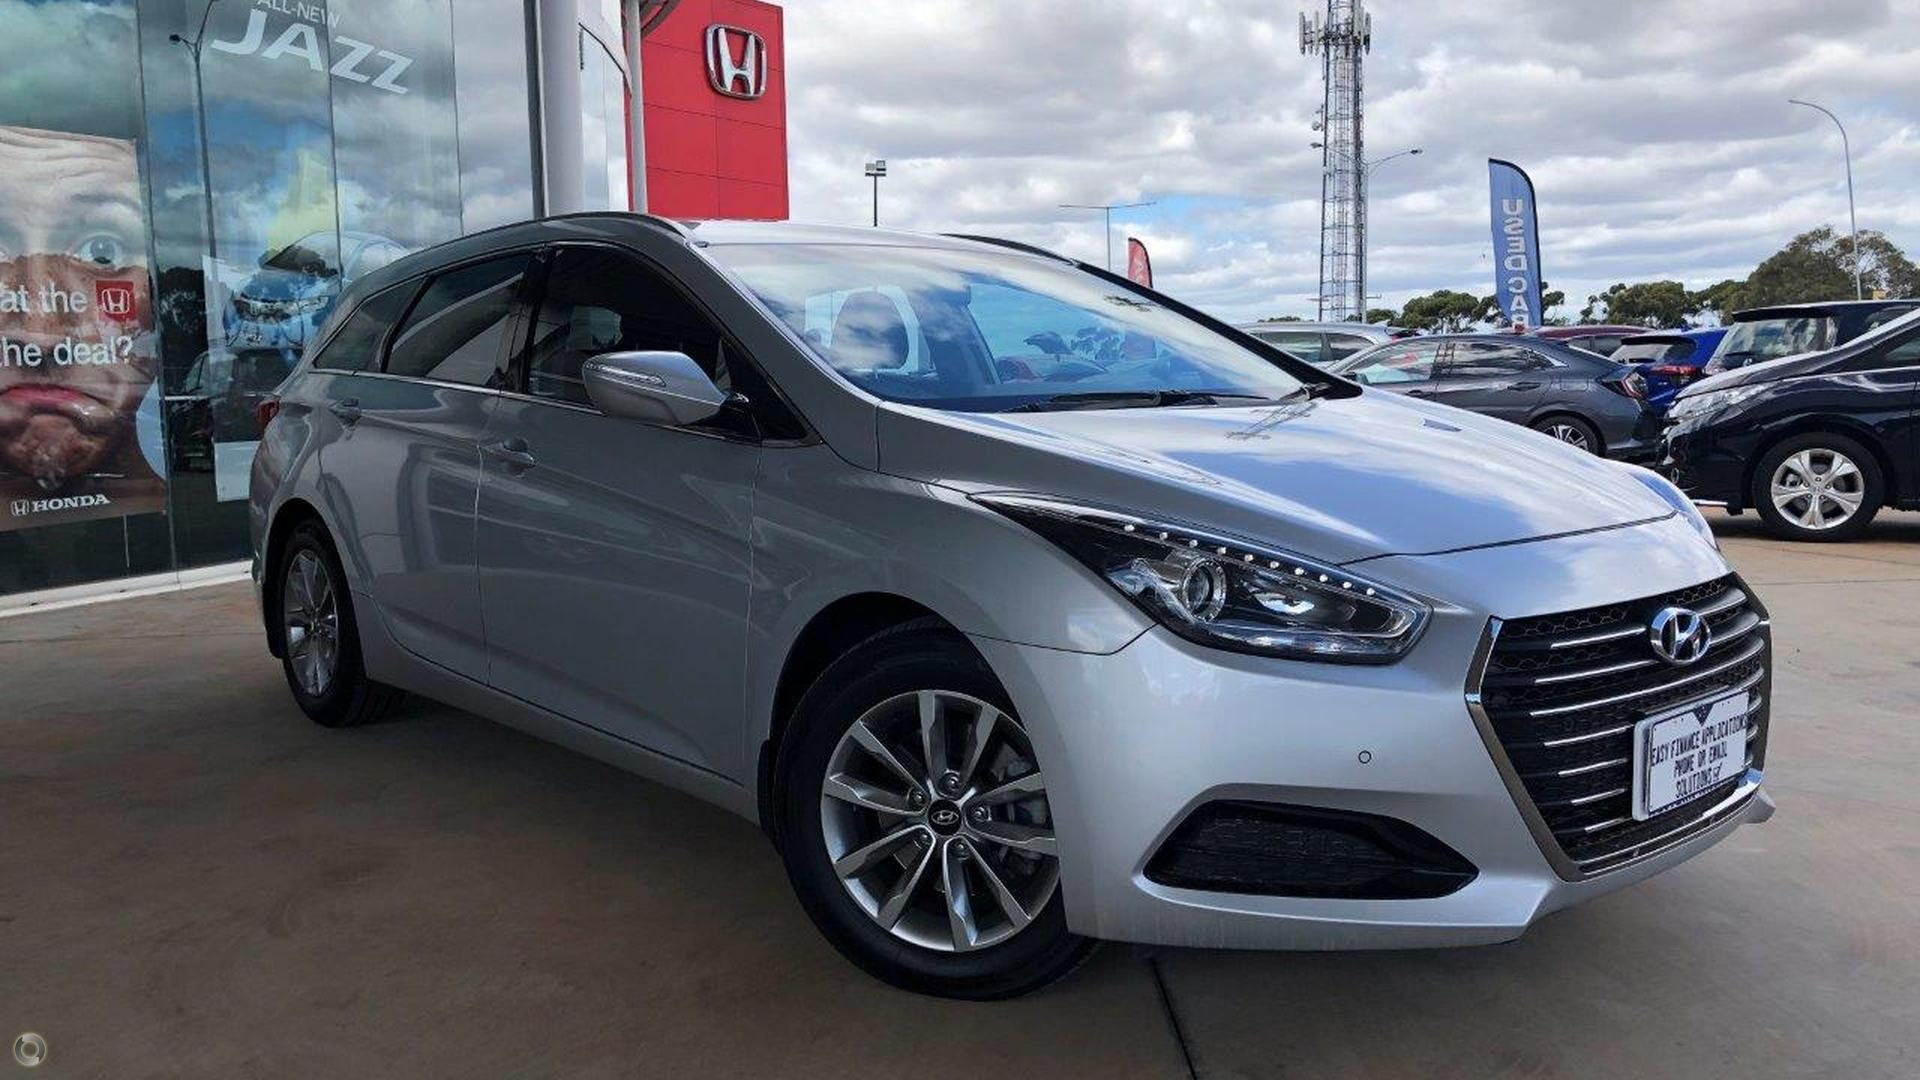 2016 Hyundai I40 Active VF4 Series II